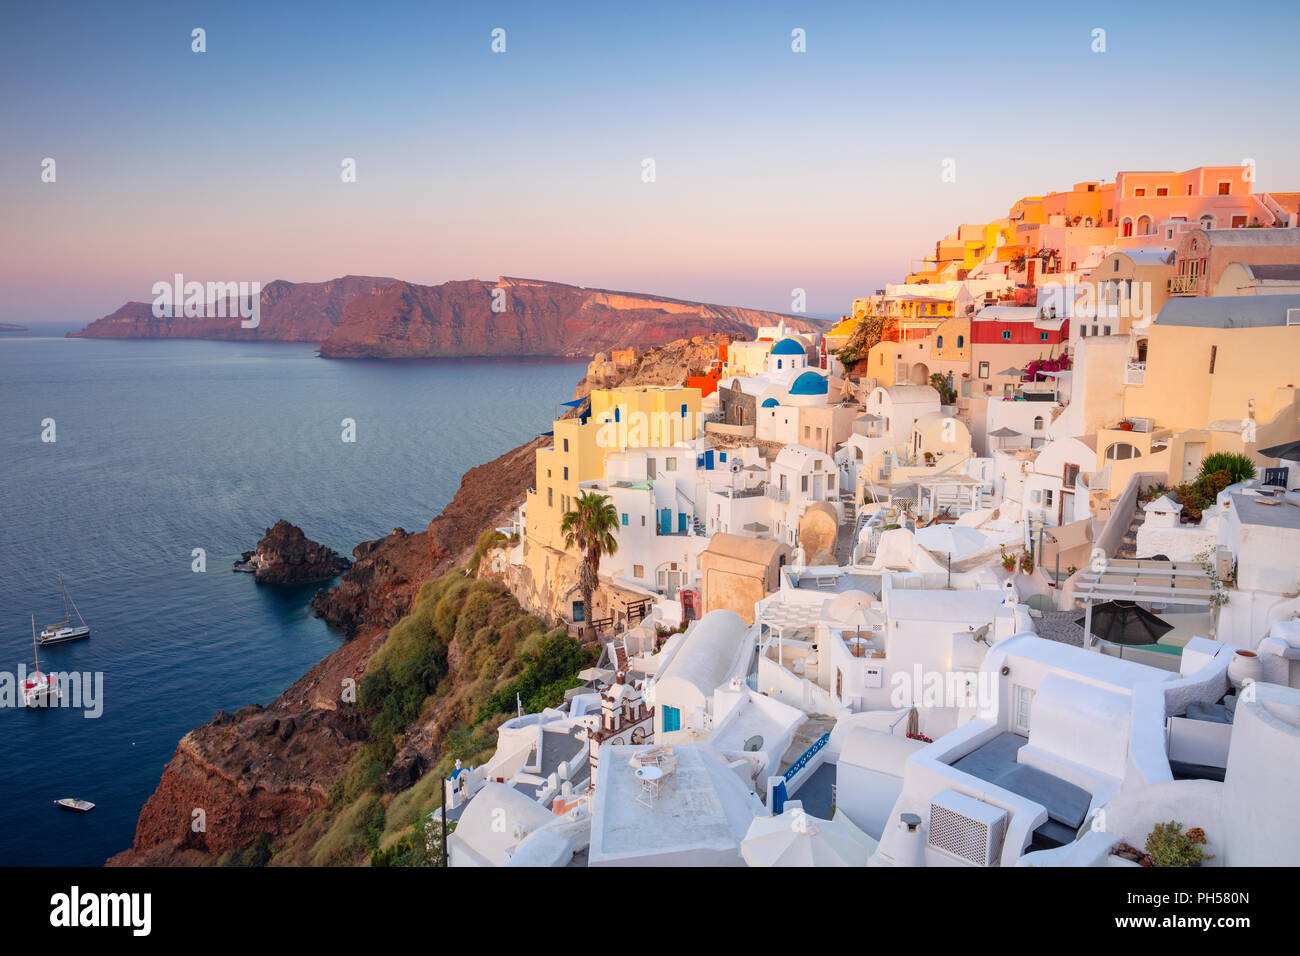 Oia, Santorini. Image of famous village Oia located at one of Cyclades island of Santorini, South Aegean, Greece. - Stock Image